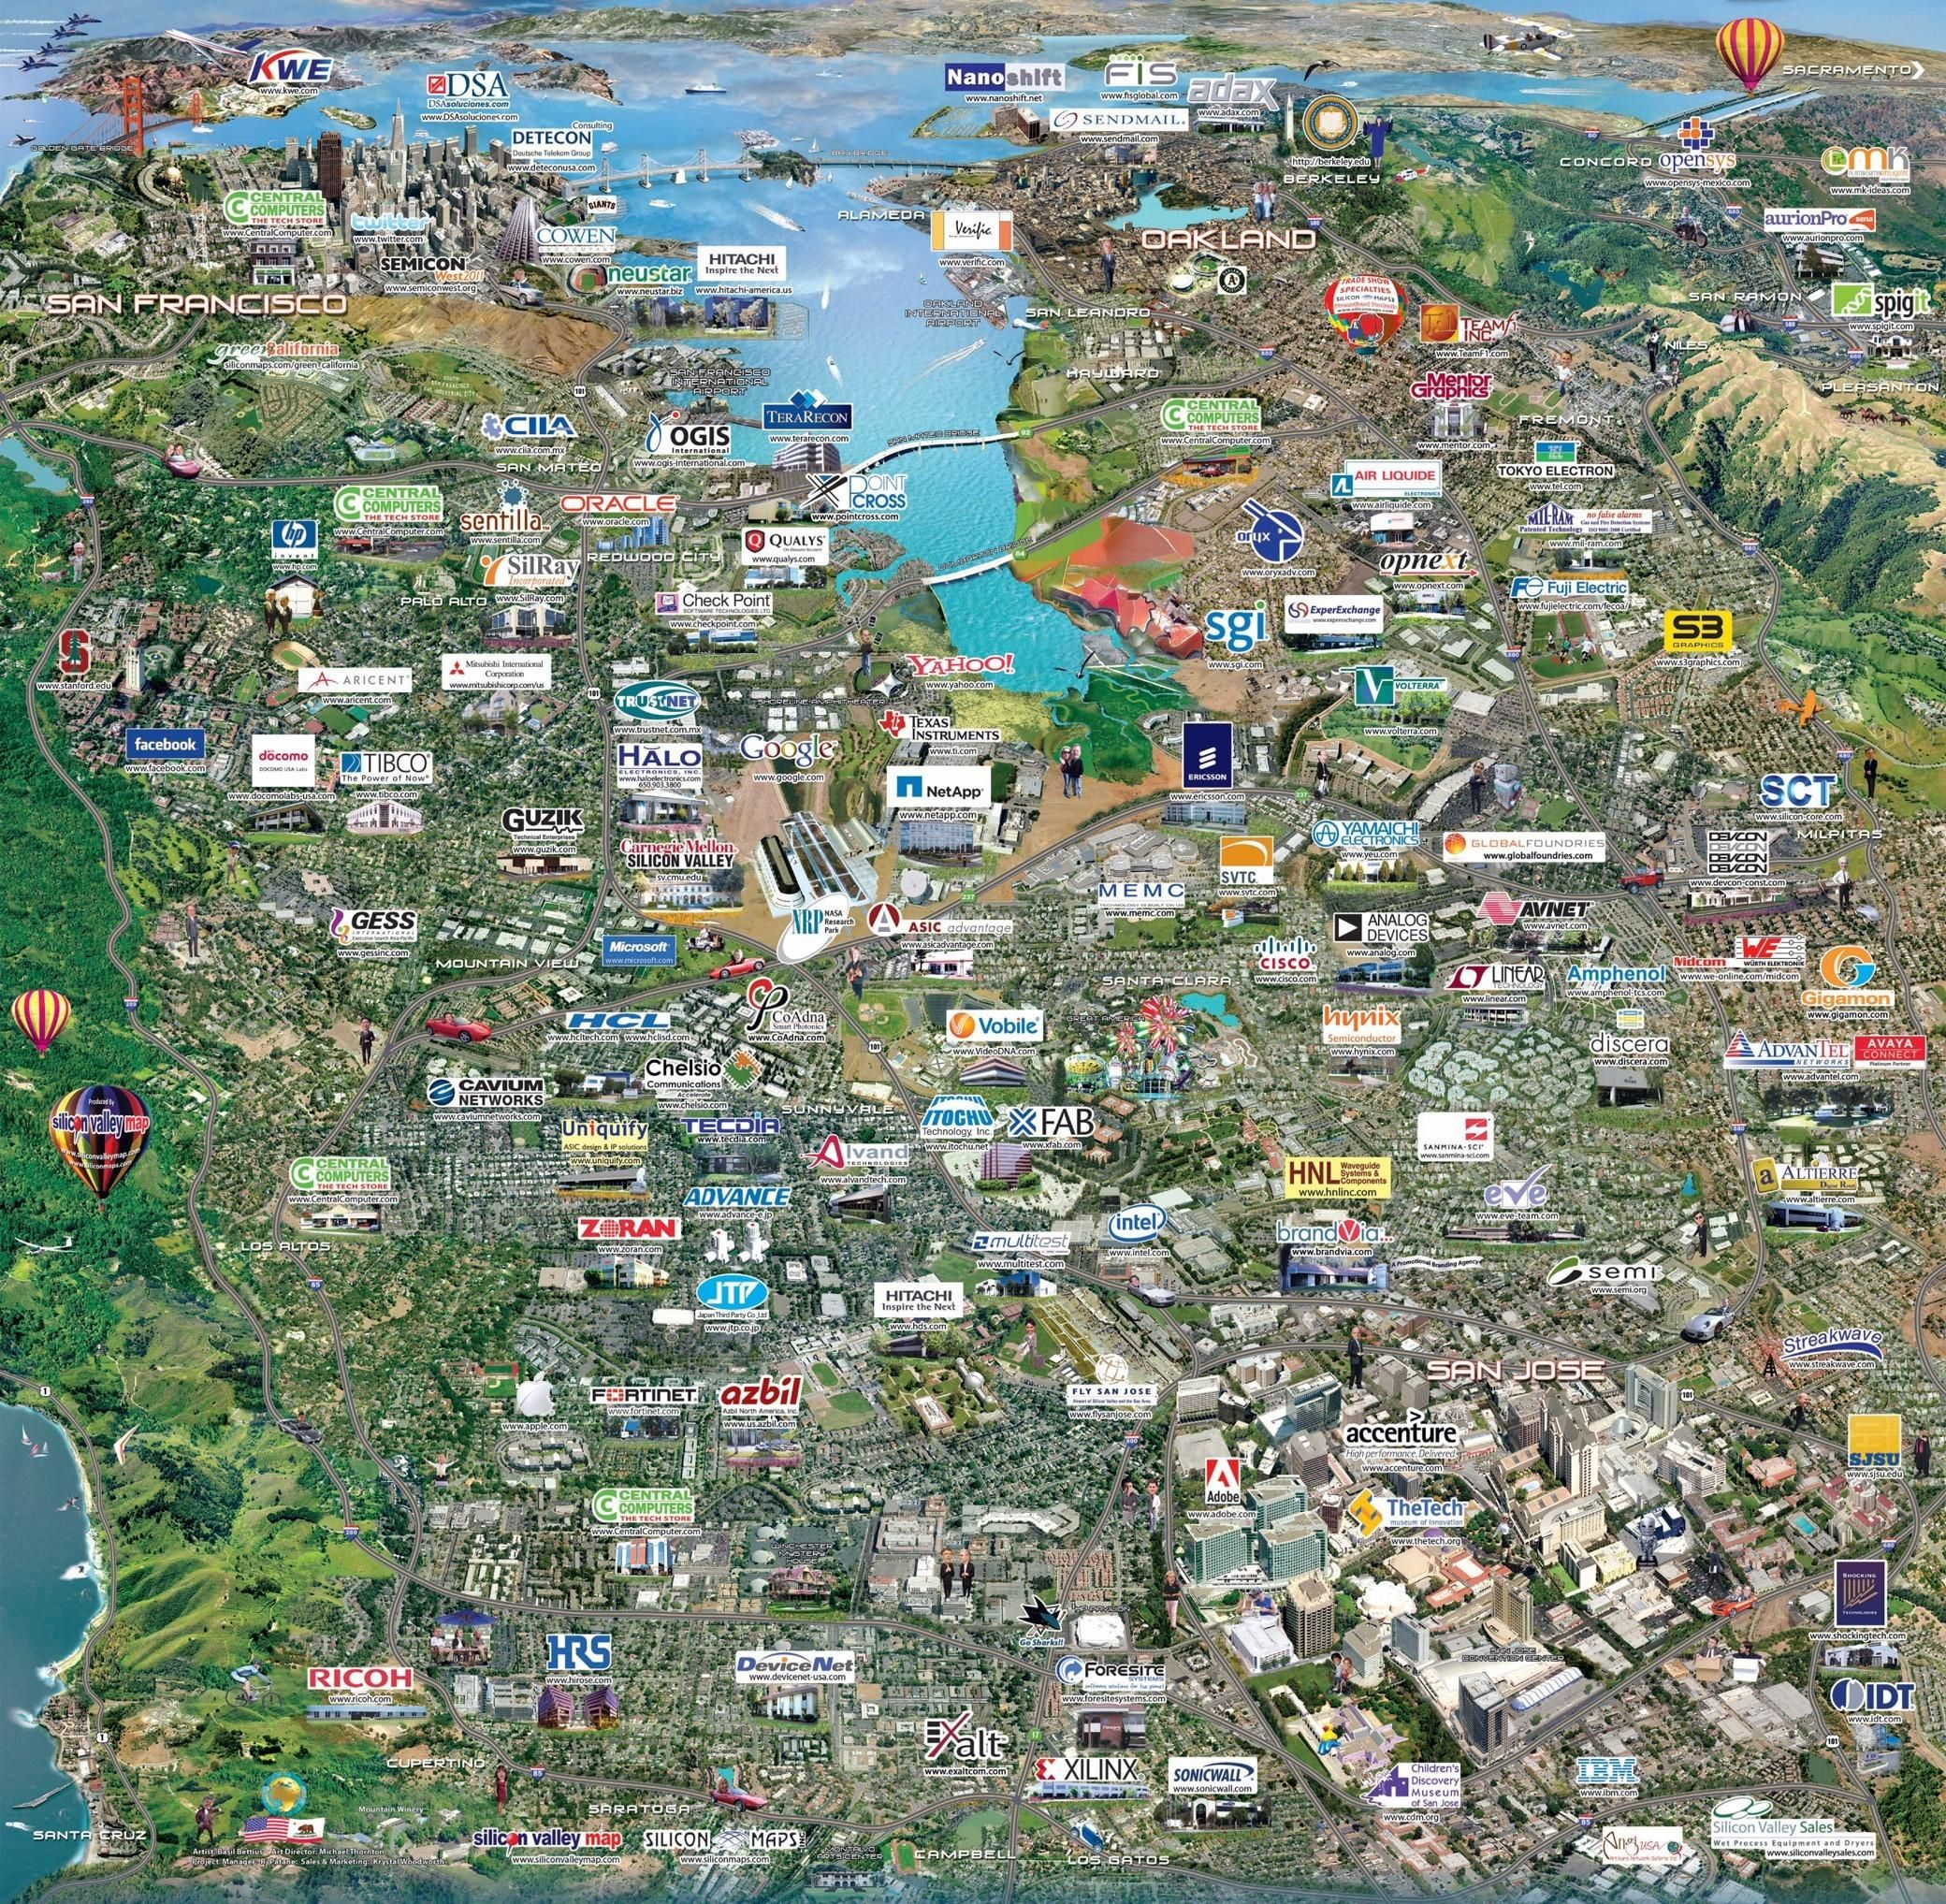 Tech Companies in Silicon Valley | United States in 2019 ... on san diego map, silicon hills map, napa county map, palo alto map, los angeles map, san jose map, san francisco map, bay area map, silicon beach map, east valley zip code map, san ramon valley map, santa barbara map, valley of mexico map, east bay map, silicon forest map, alameda county map, sacramento map, santa clara map, mountain view map, blossom valley map,